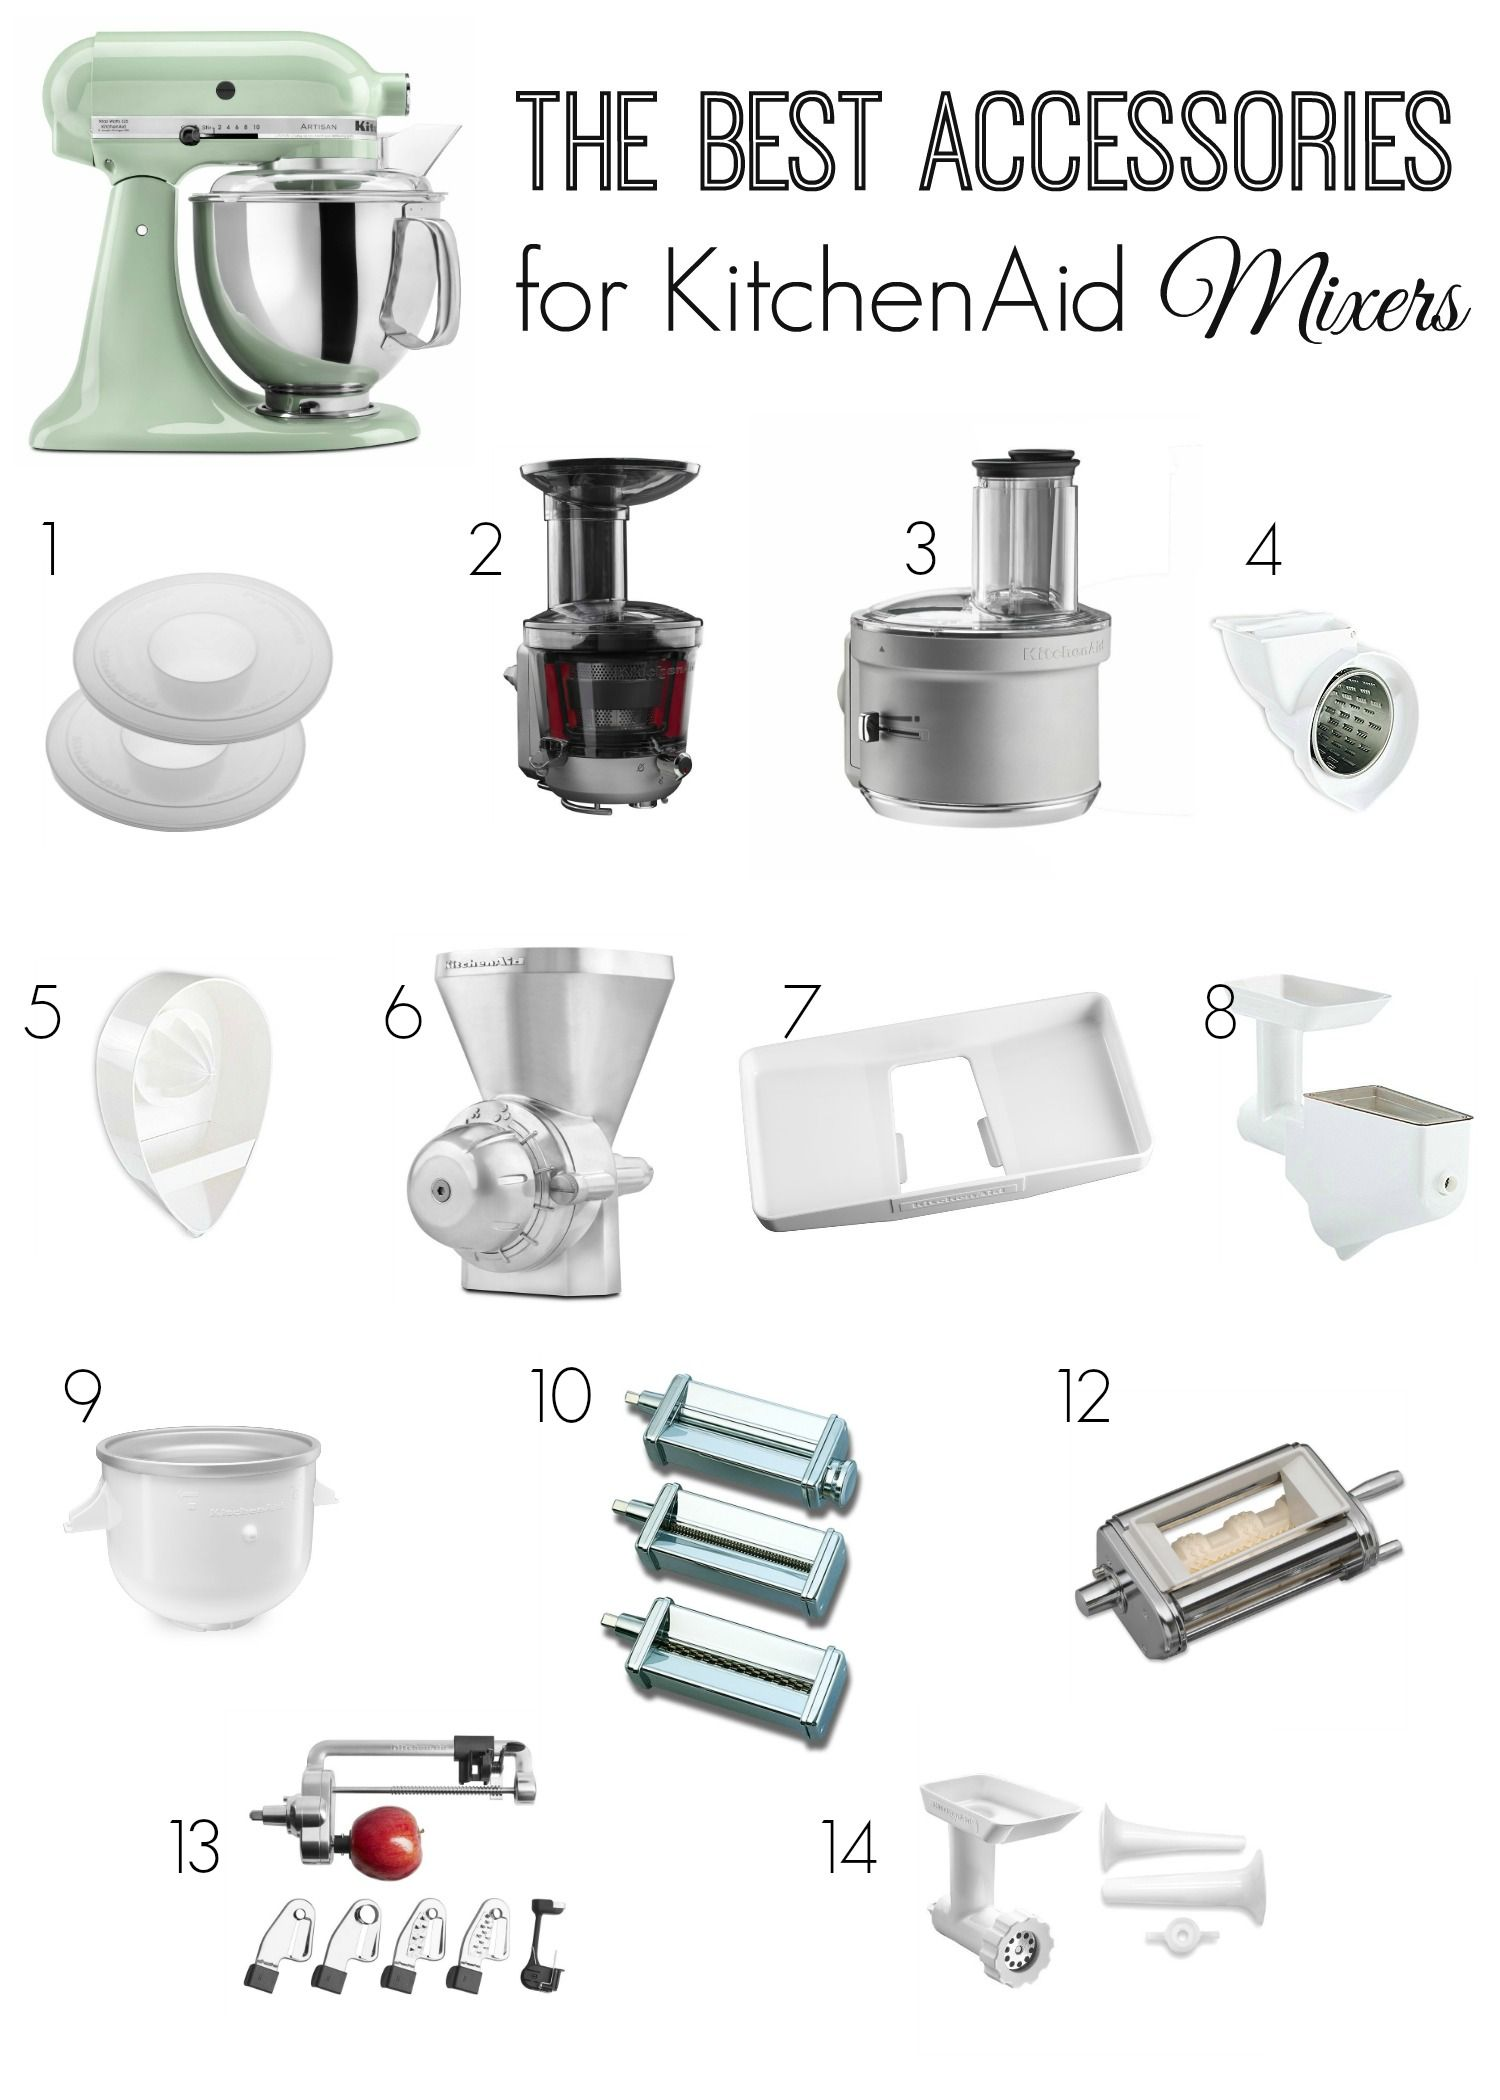 Kitchen Aid Attachments Valence If You Have A Kitchenaid Stand Mixer Ll Love This List Of The Best Accessories To Transform Your Into Sausage Stuffer Spiralizer And More